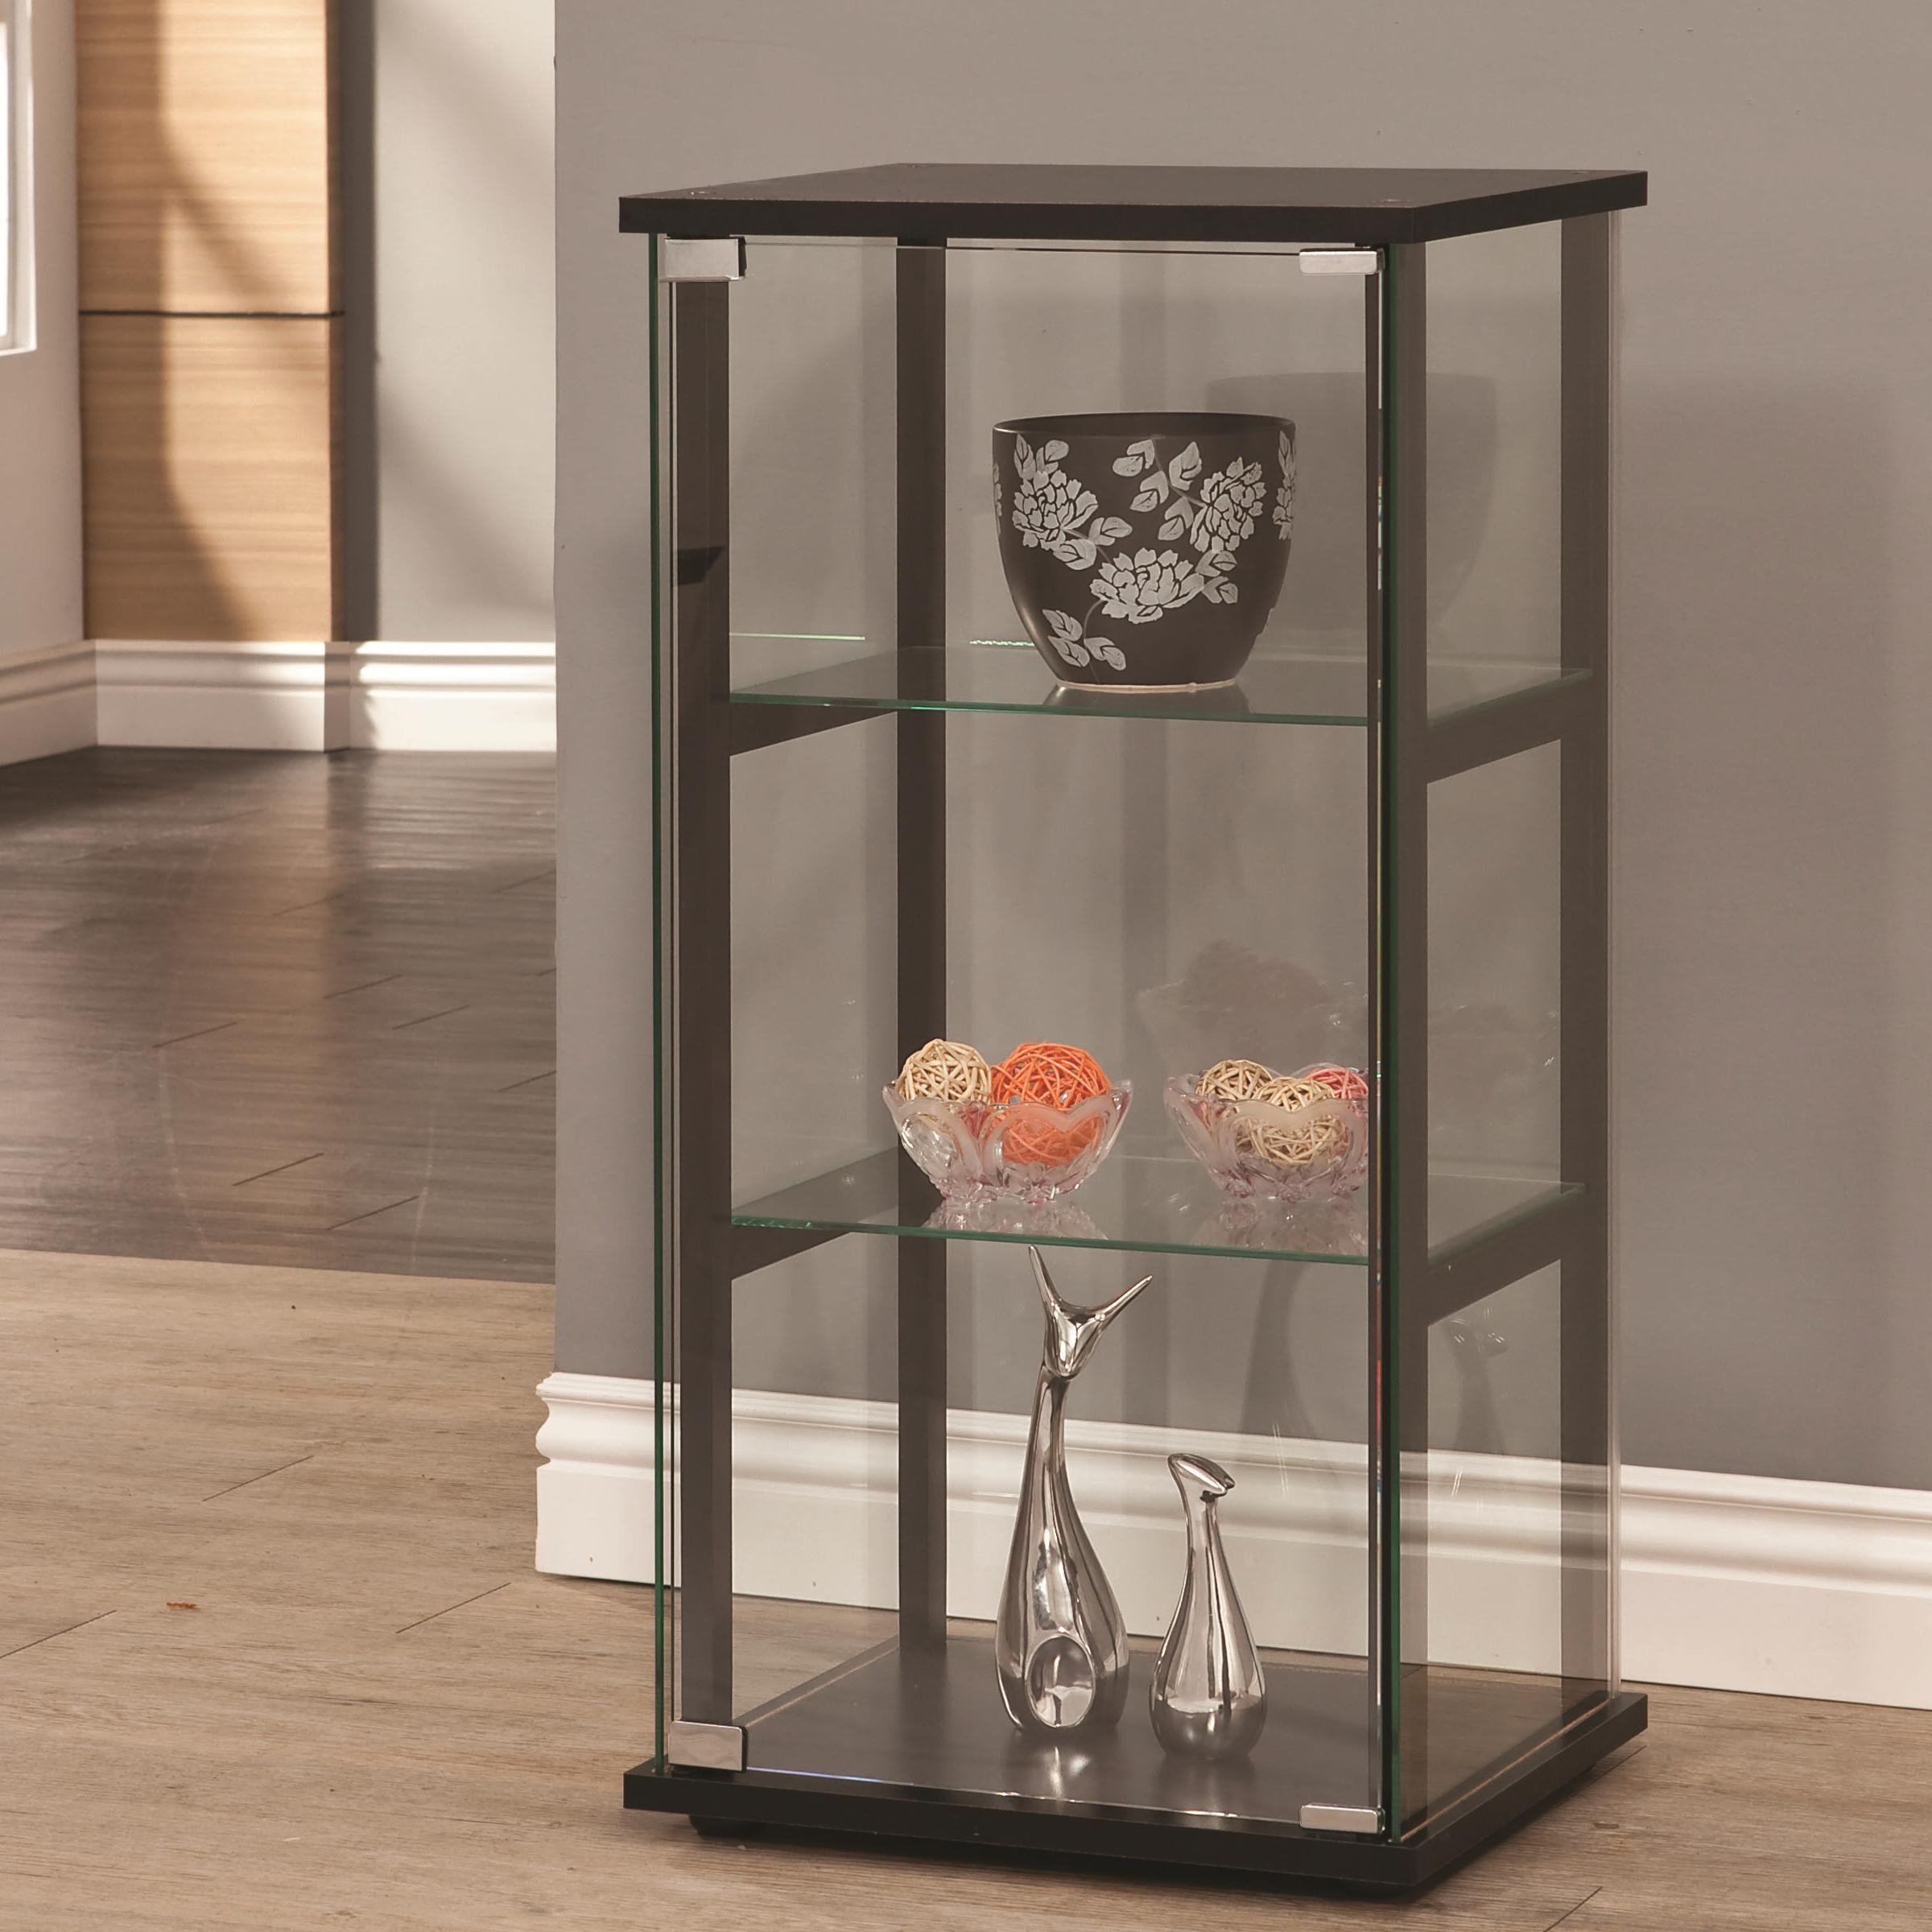 Curio Cabinets 3 Shelf Contemporary Glass Curio Cabinet By Coaster